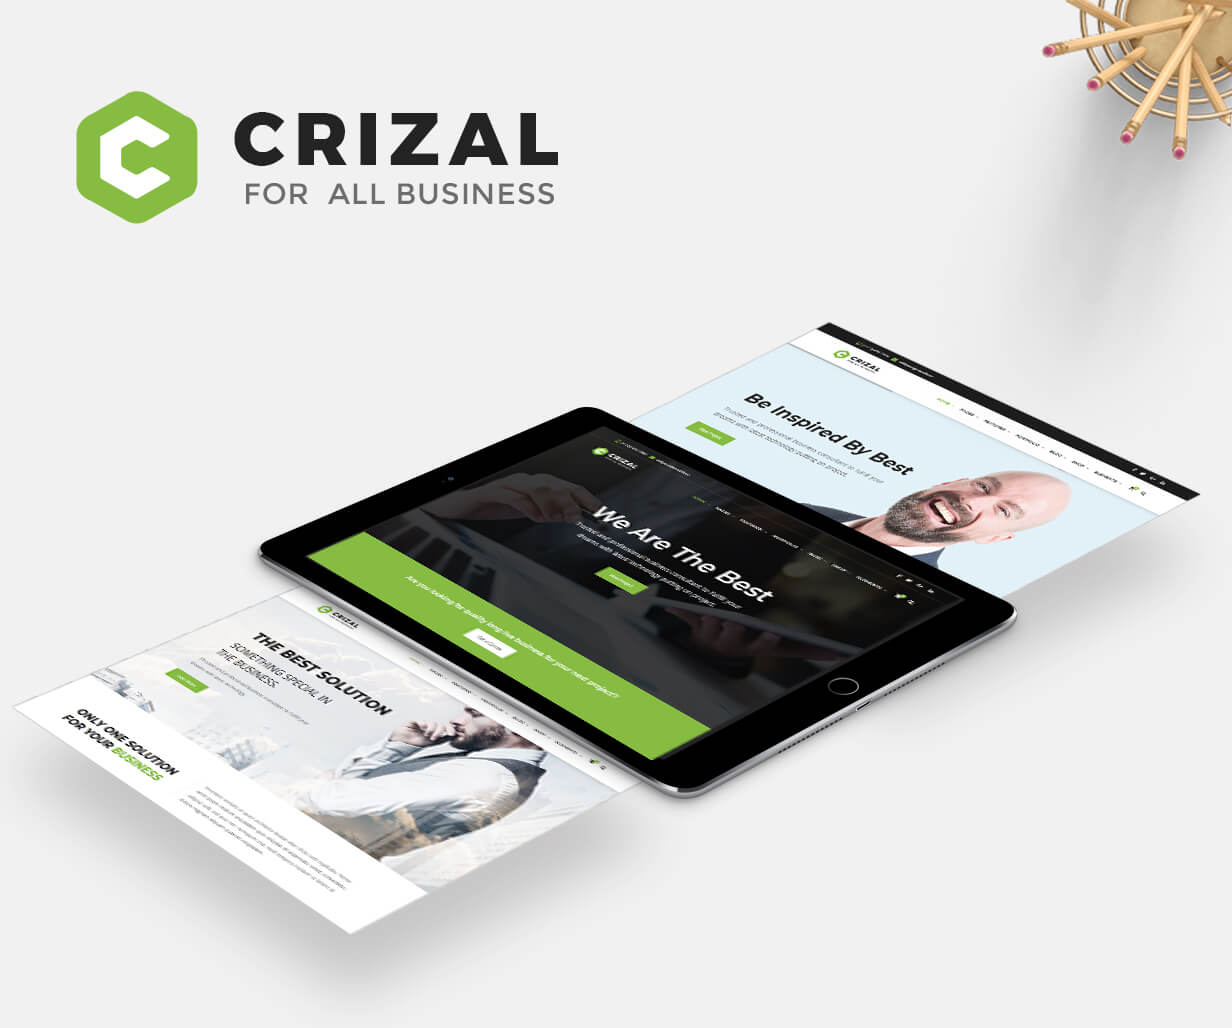 crizal-preview-1.jpg